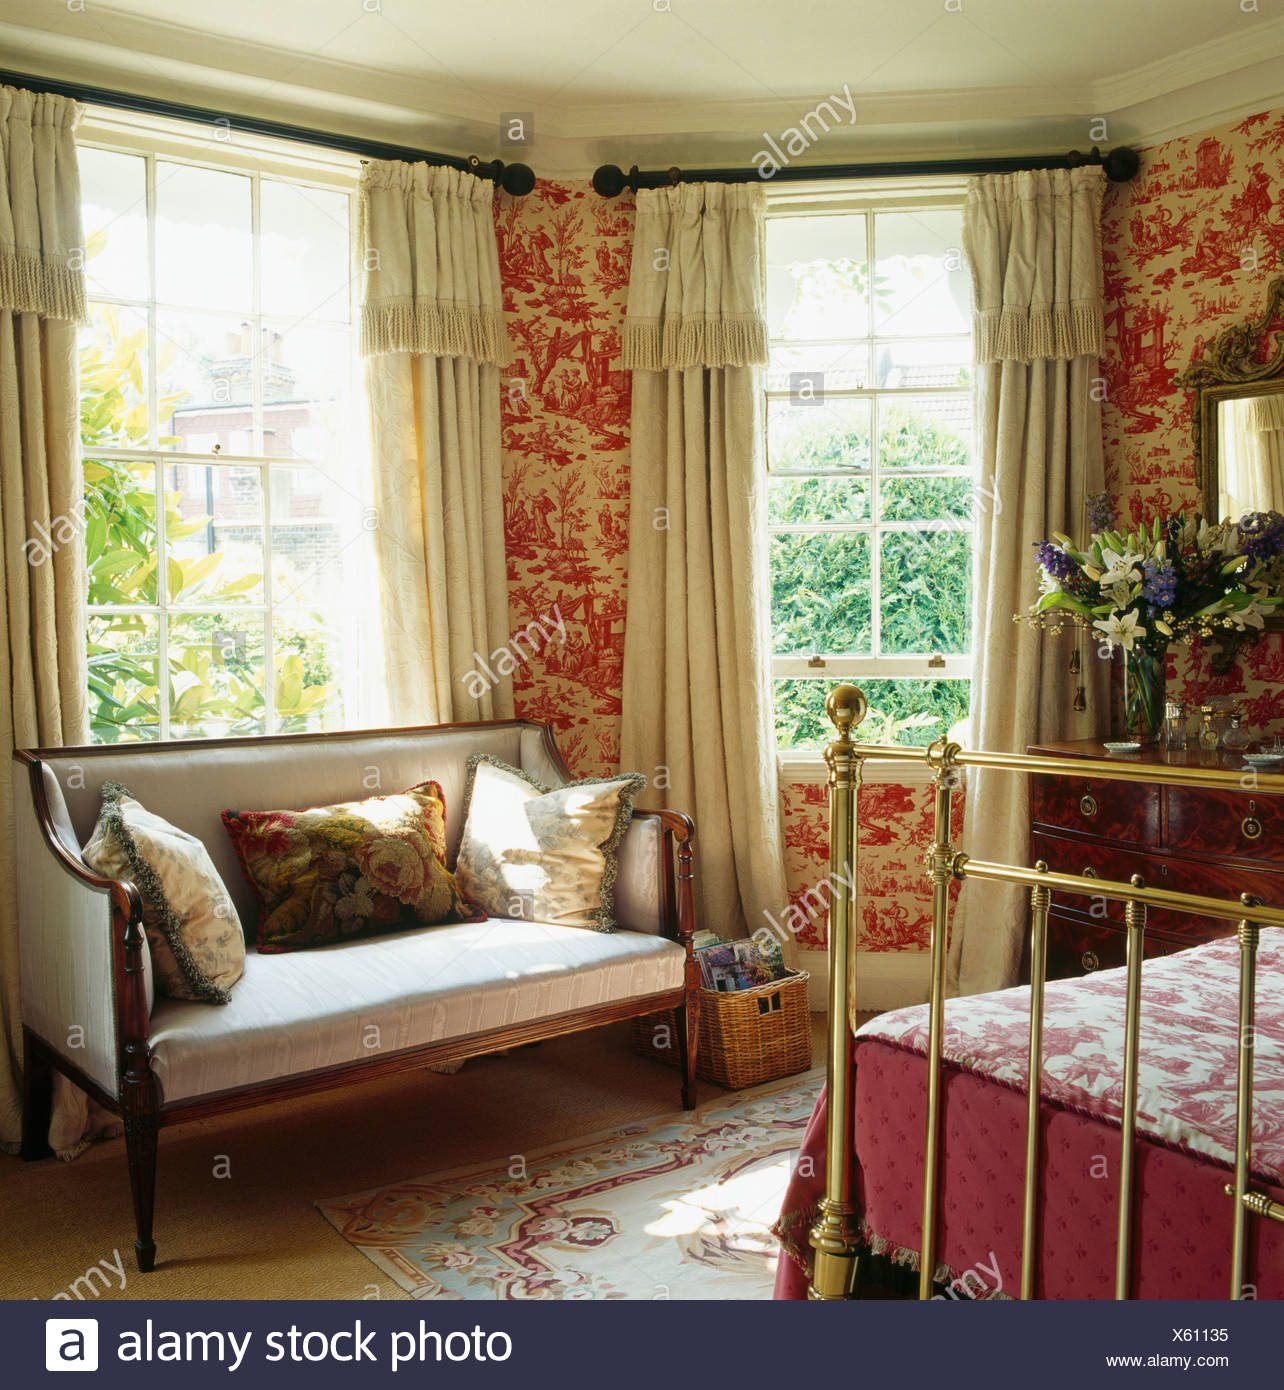 Great Red Toile De Jouy Wallpaper In Bedroom With Antique Sofa In Front Of Window  With Cream Curtains